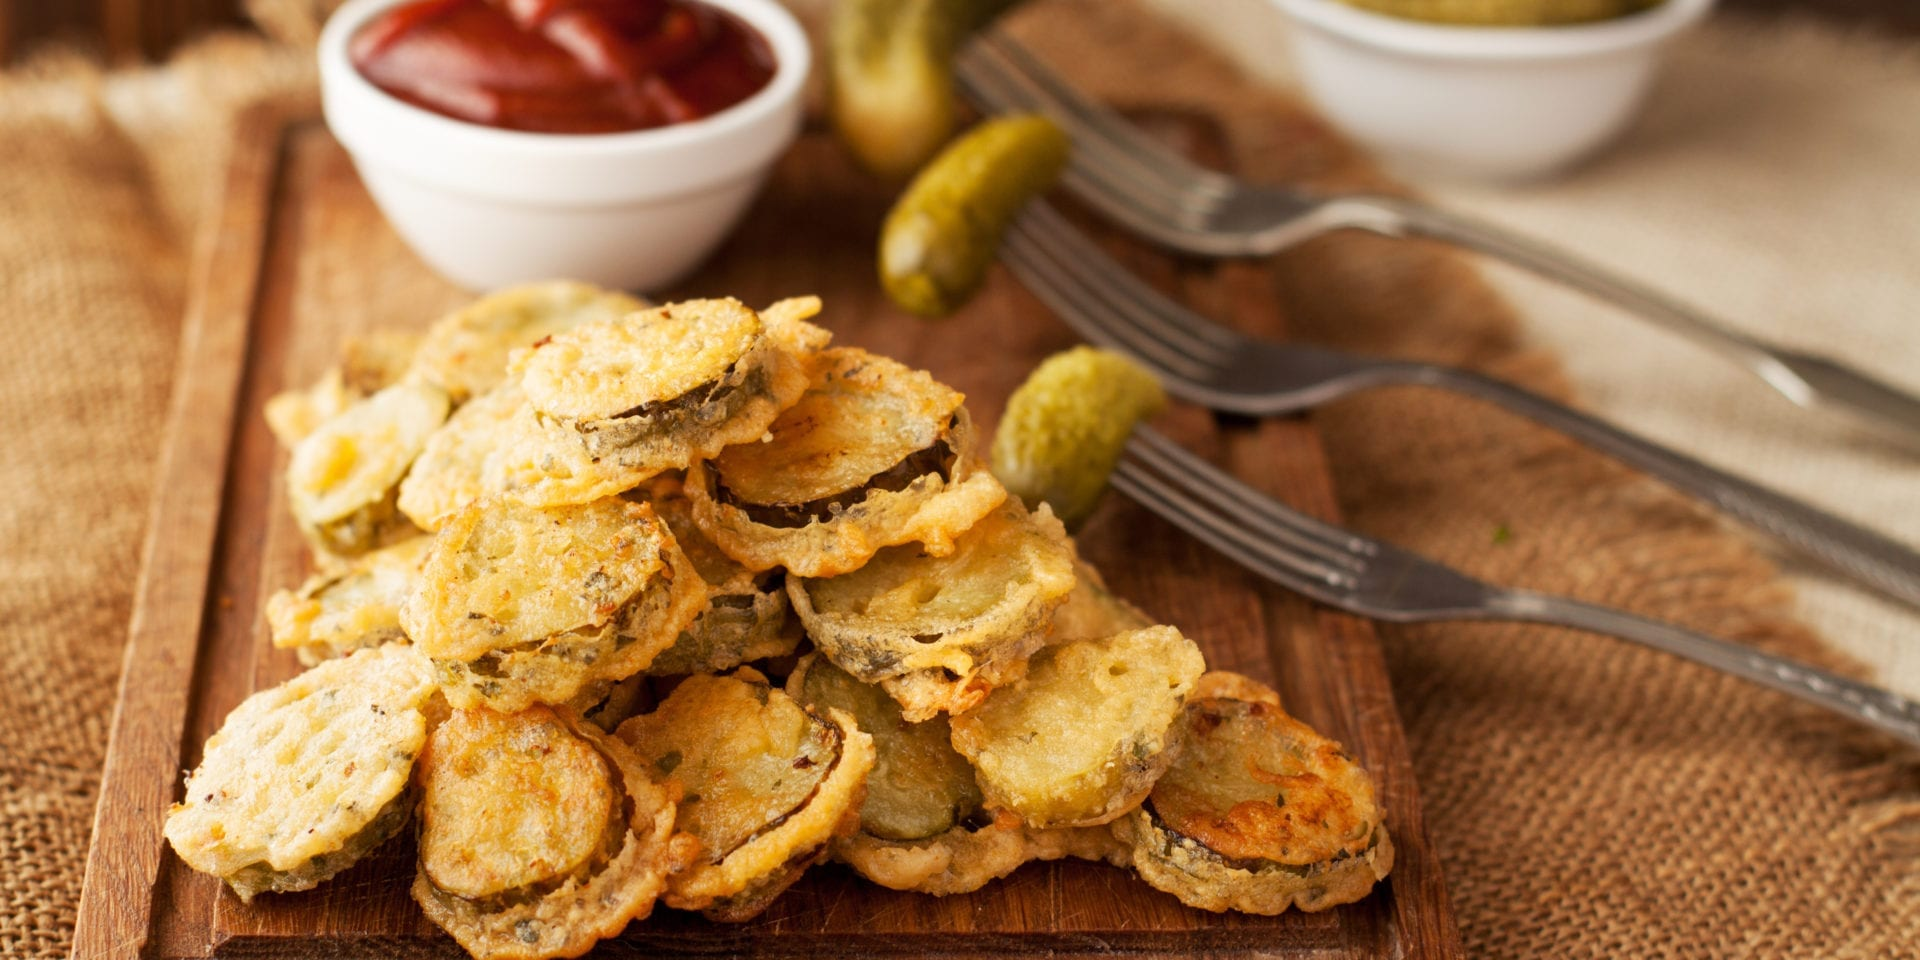 Keto Fried Pickles (Air Fryer Recipe)